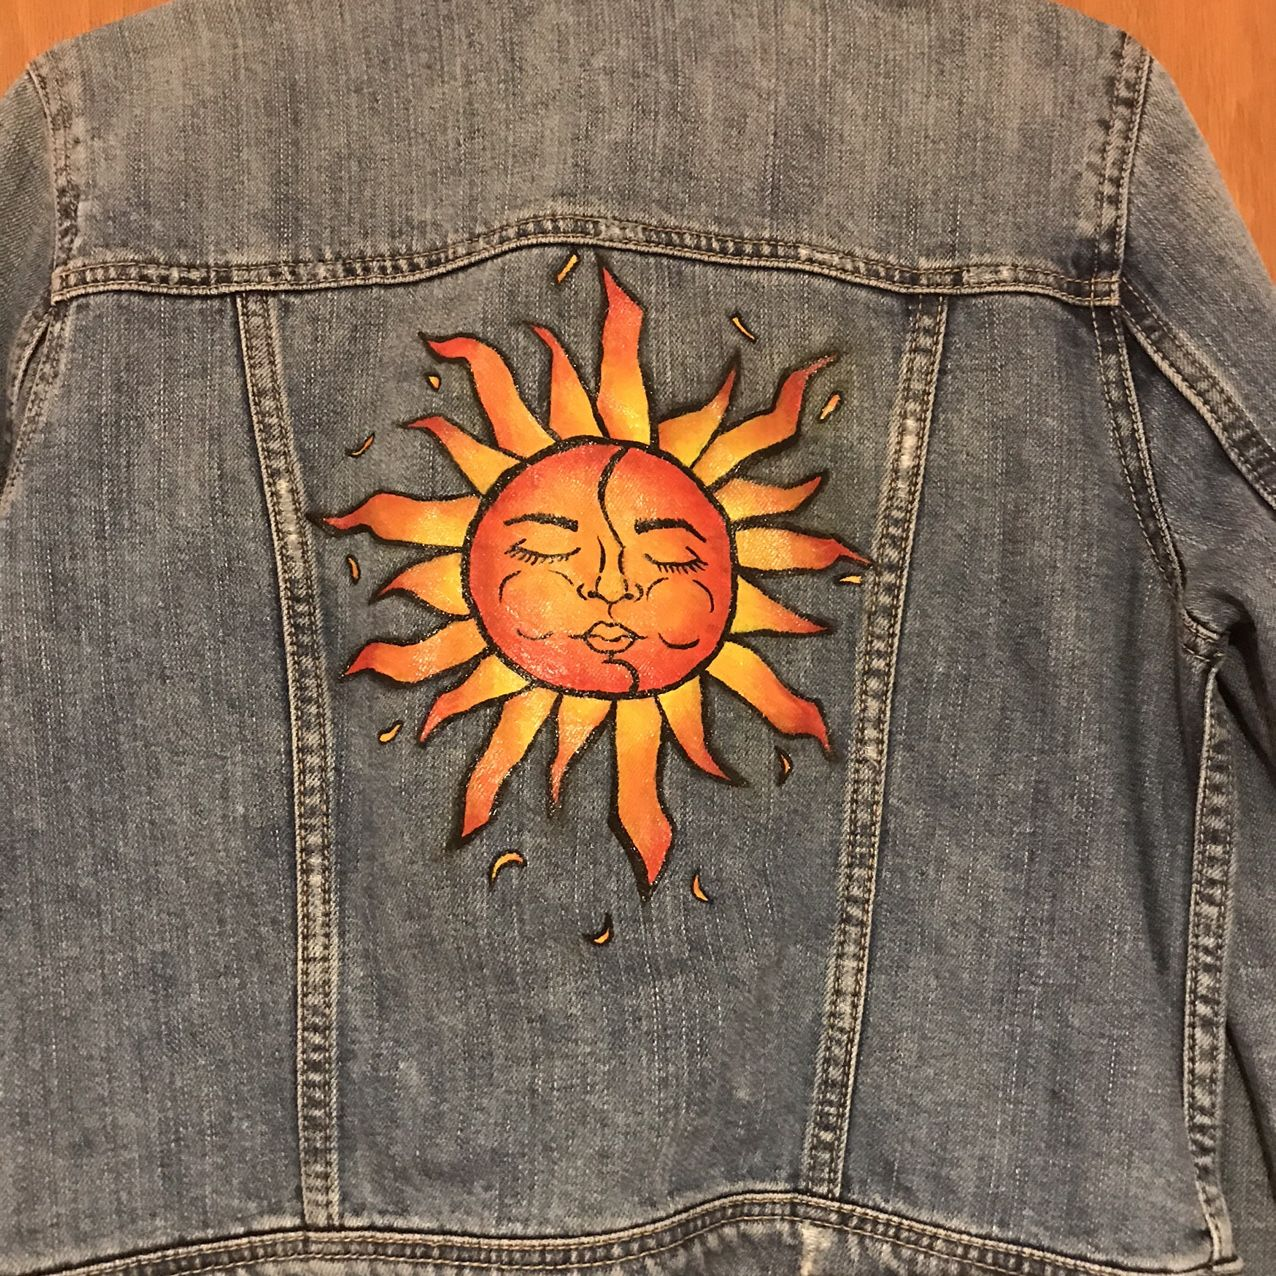 Sunshine jean jacket 🌞 Hand painted by me Blue... - Depop